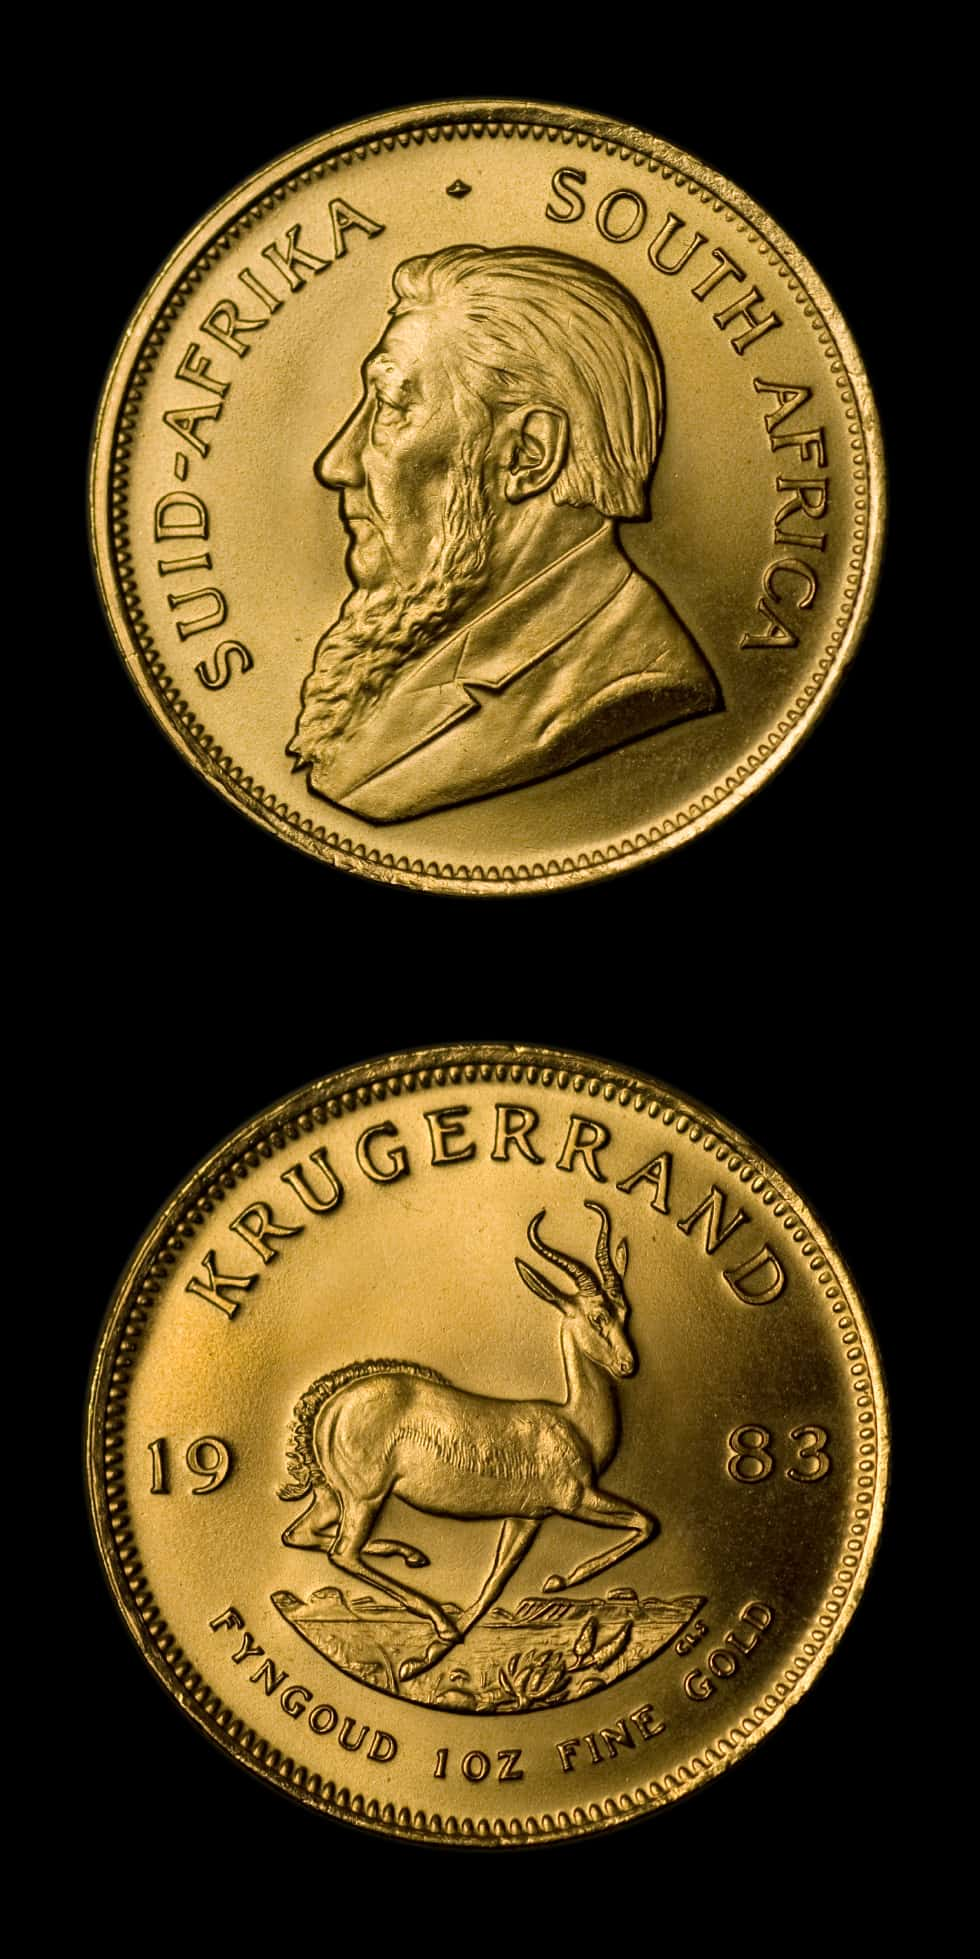 Bad Krugerrands A Concern To Pawn And Numismatics Operations